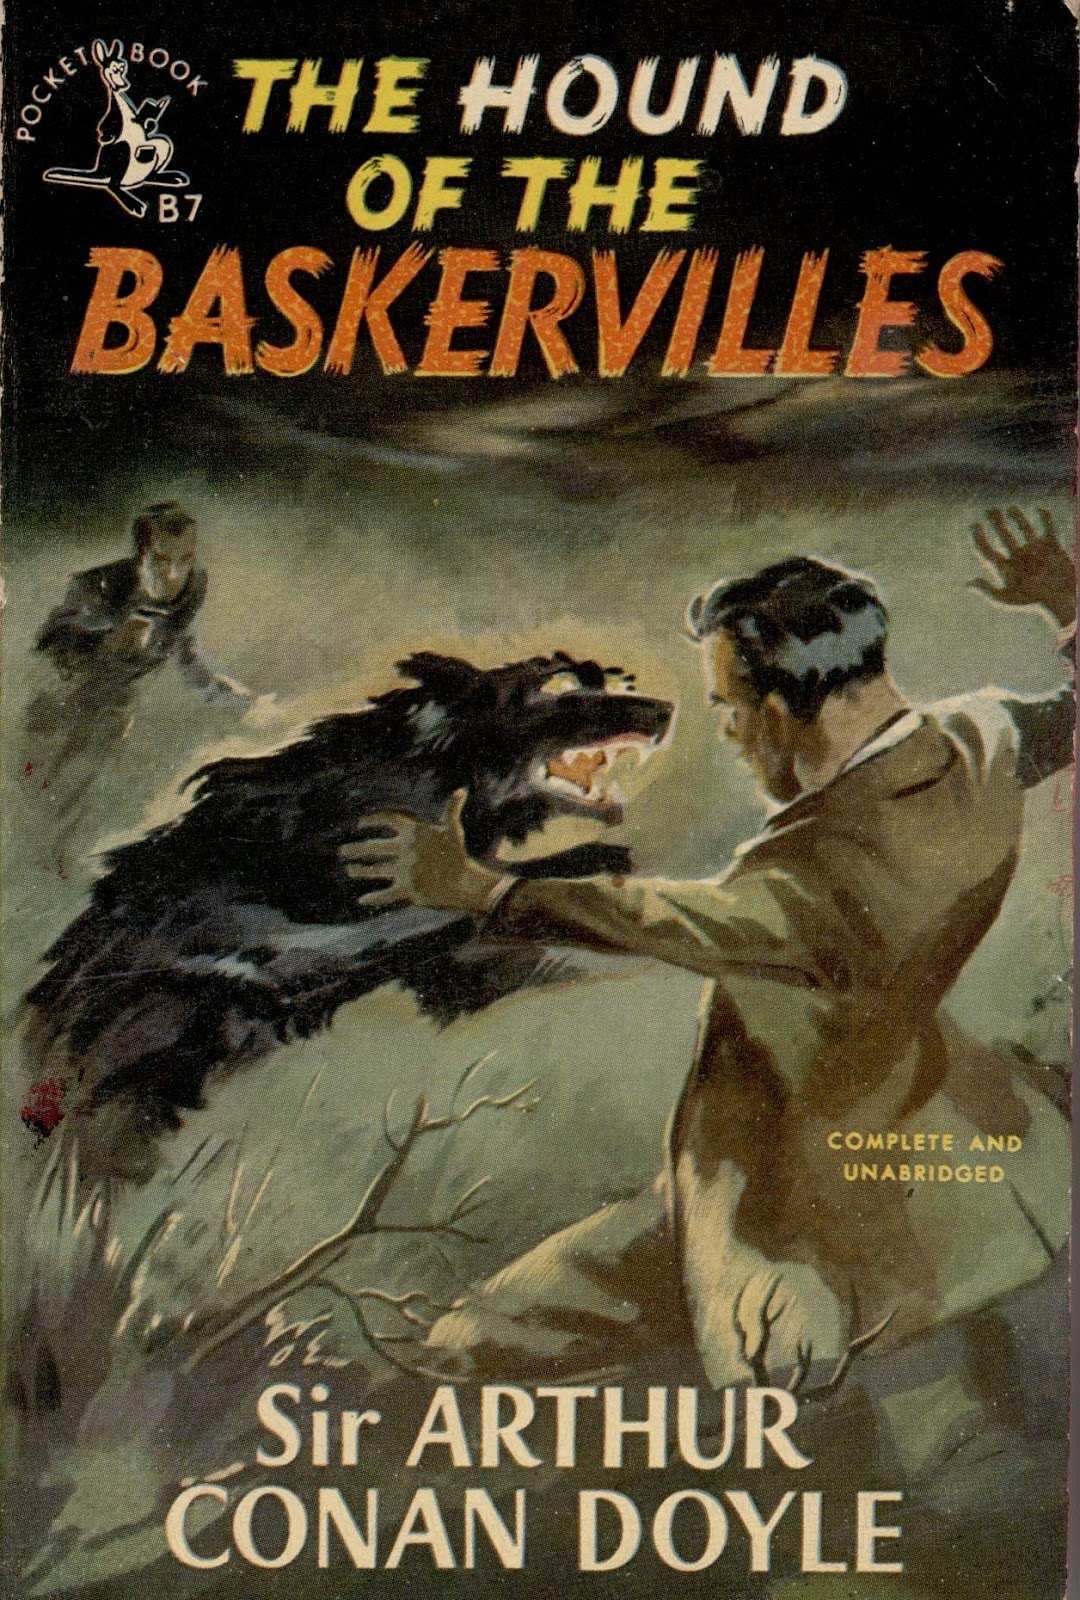 arthur conan doyle the hound of the baskervilles essay write a arthur conan doyle the hound of the baskervilles essay